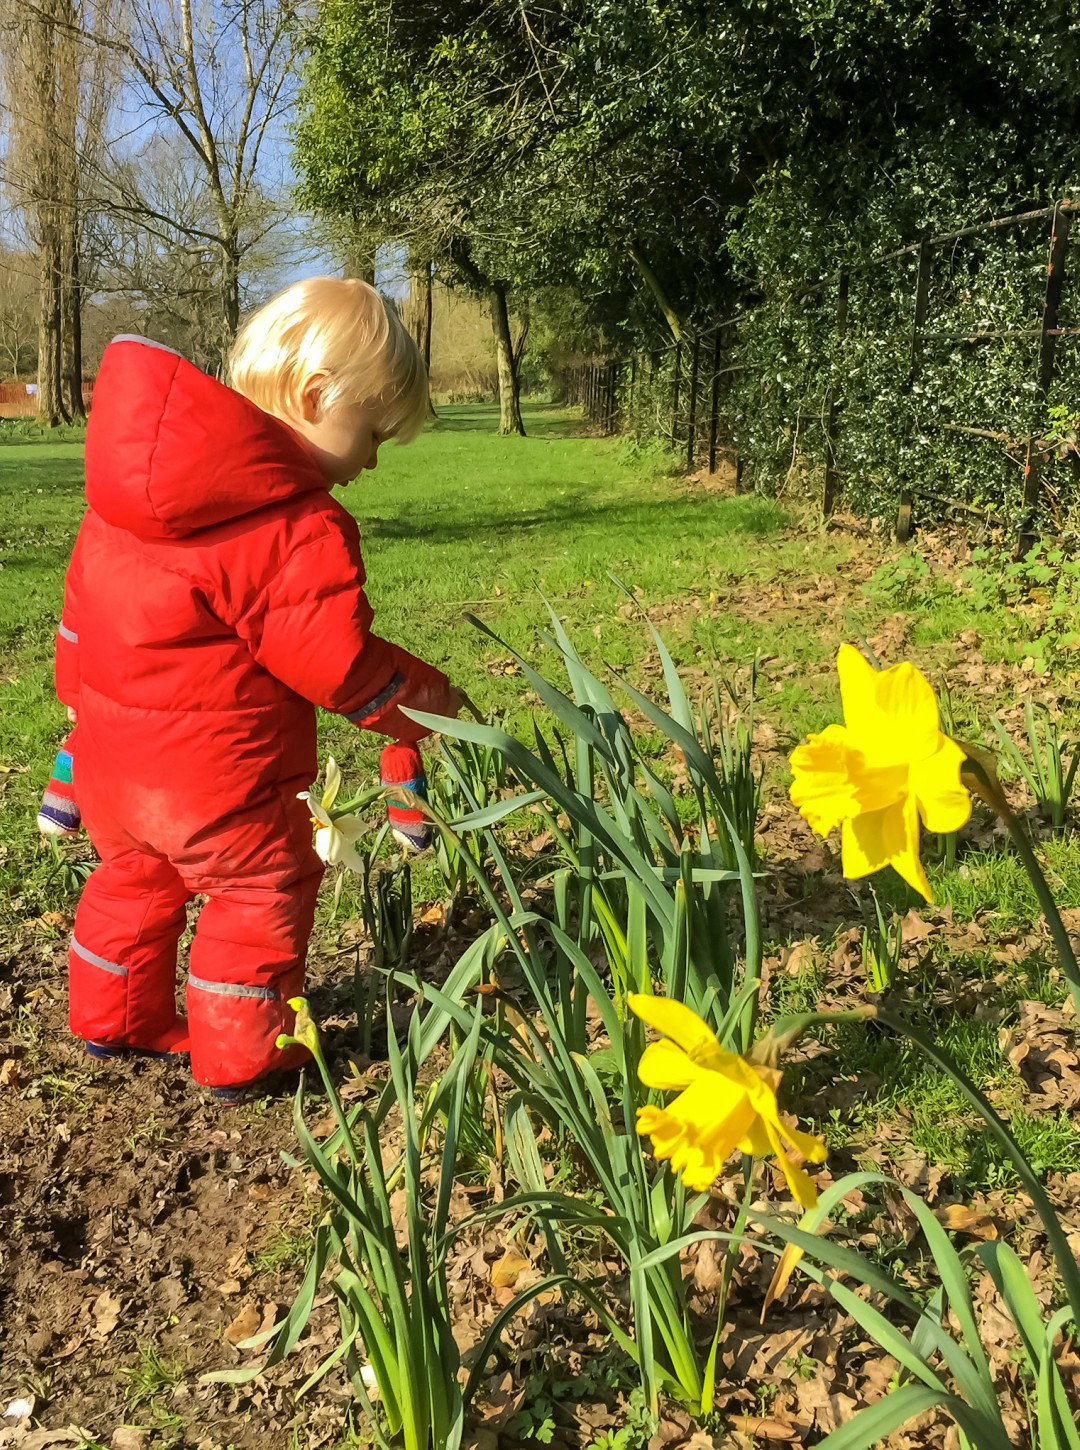 A little boy walking through some daffodils in Dunorlan Park, Kent - Our Weekend Happy 12 - Park Run, Play Parks & A Visit To A Roman Villa - Mrs H's favourite things